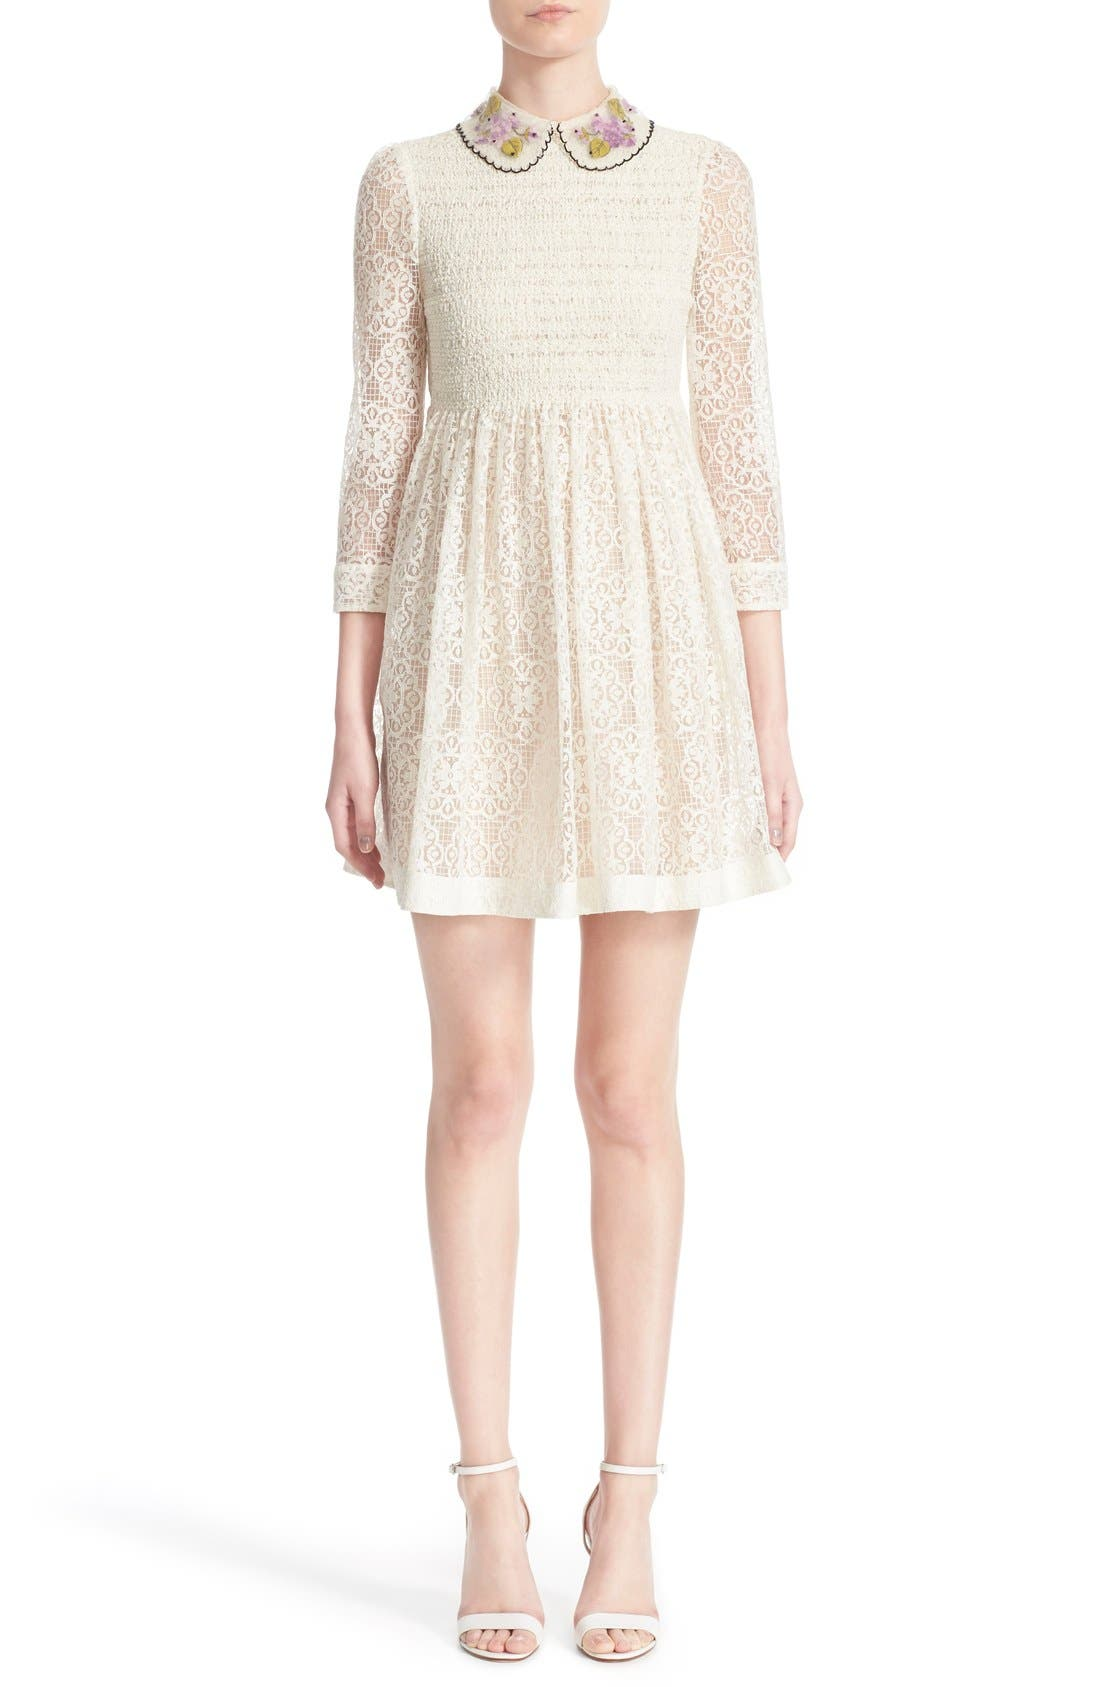 RED VALENTINO,                             Smocked Bodice Lace Dress,                             Main thumbnail 1, color,                             900